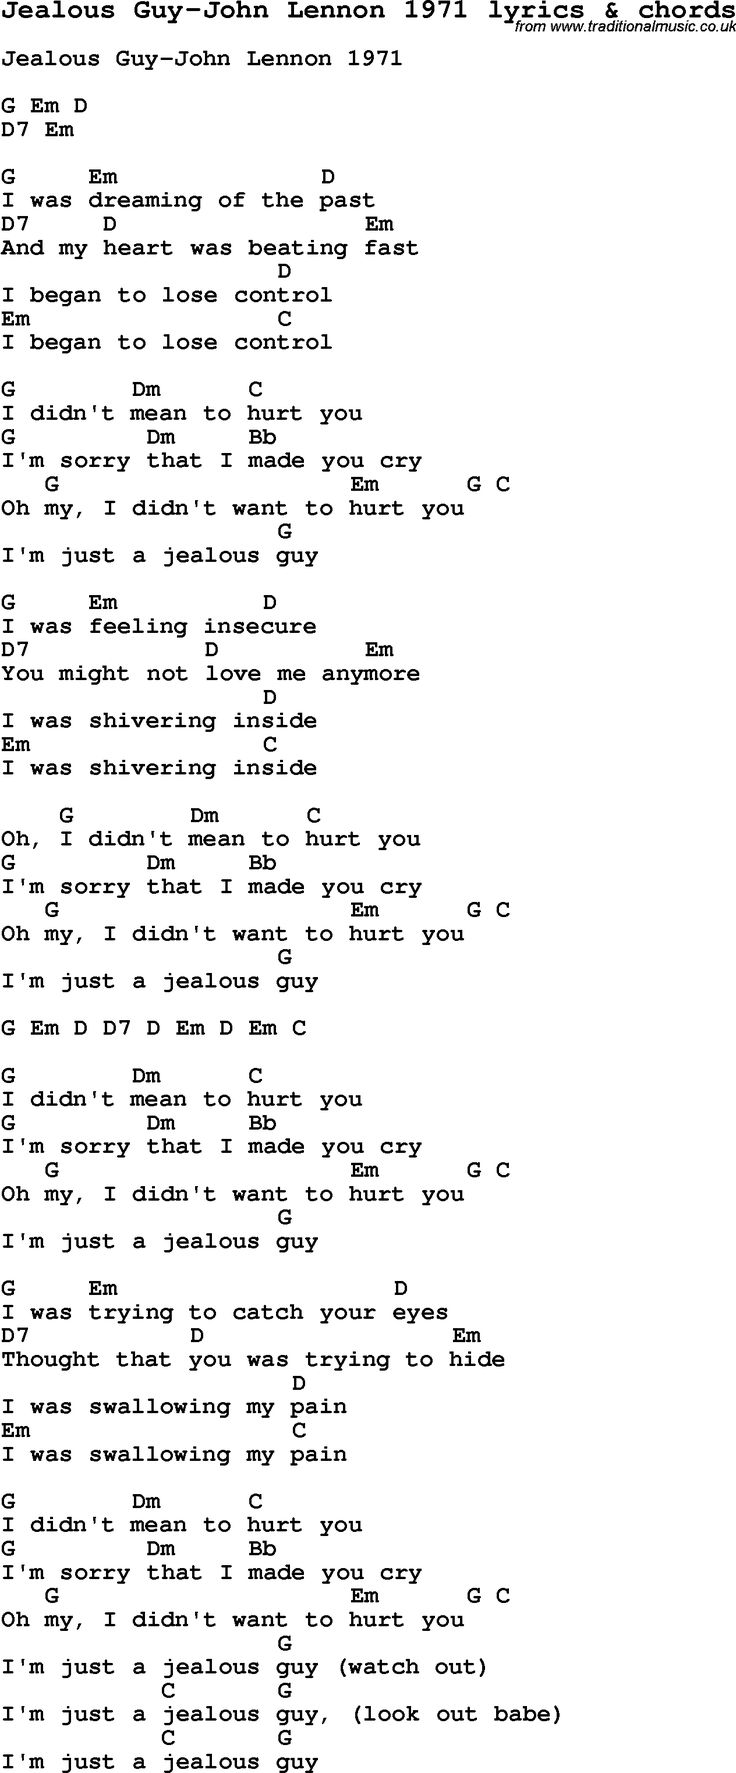 447 best guitar images on pinterest ukulele chords ukulele love song lyrics for jealous guy john lennon 1971 with chords for ukulele hexwebz Images